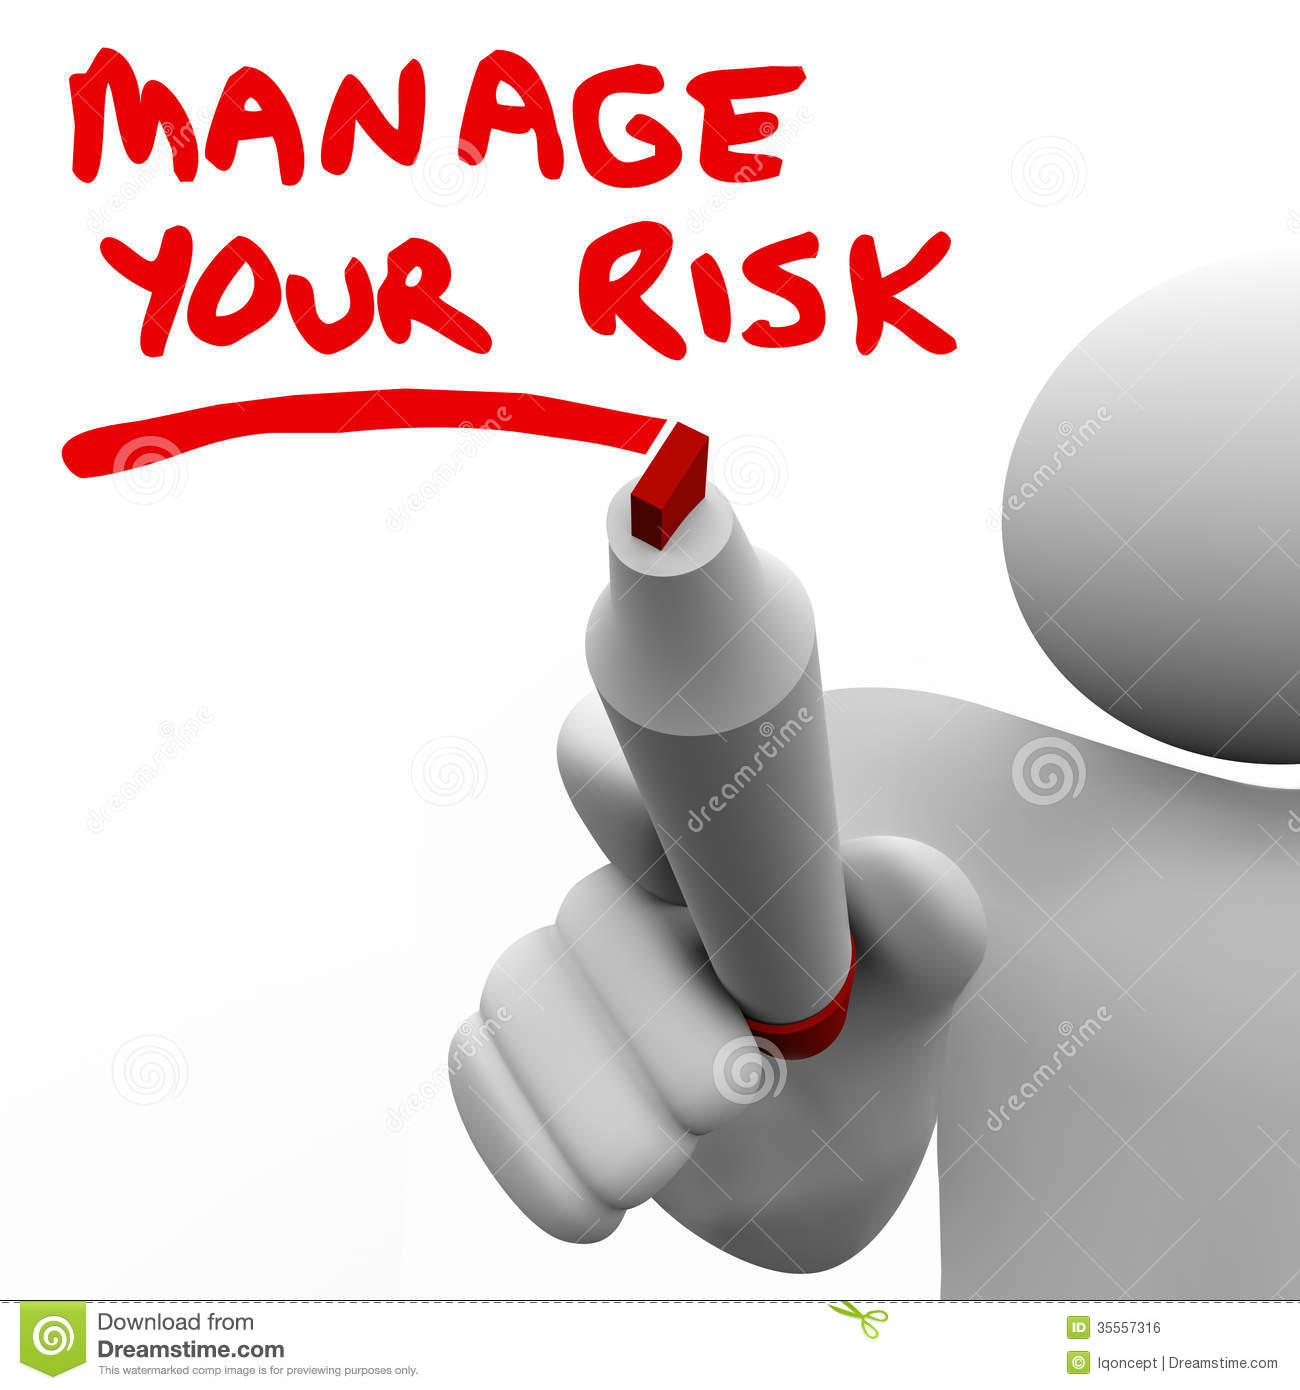 risk clipart - photo #34